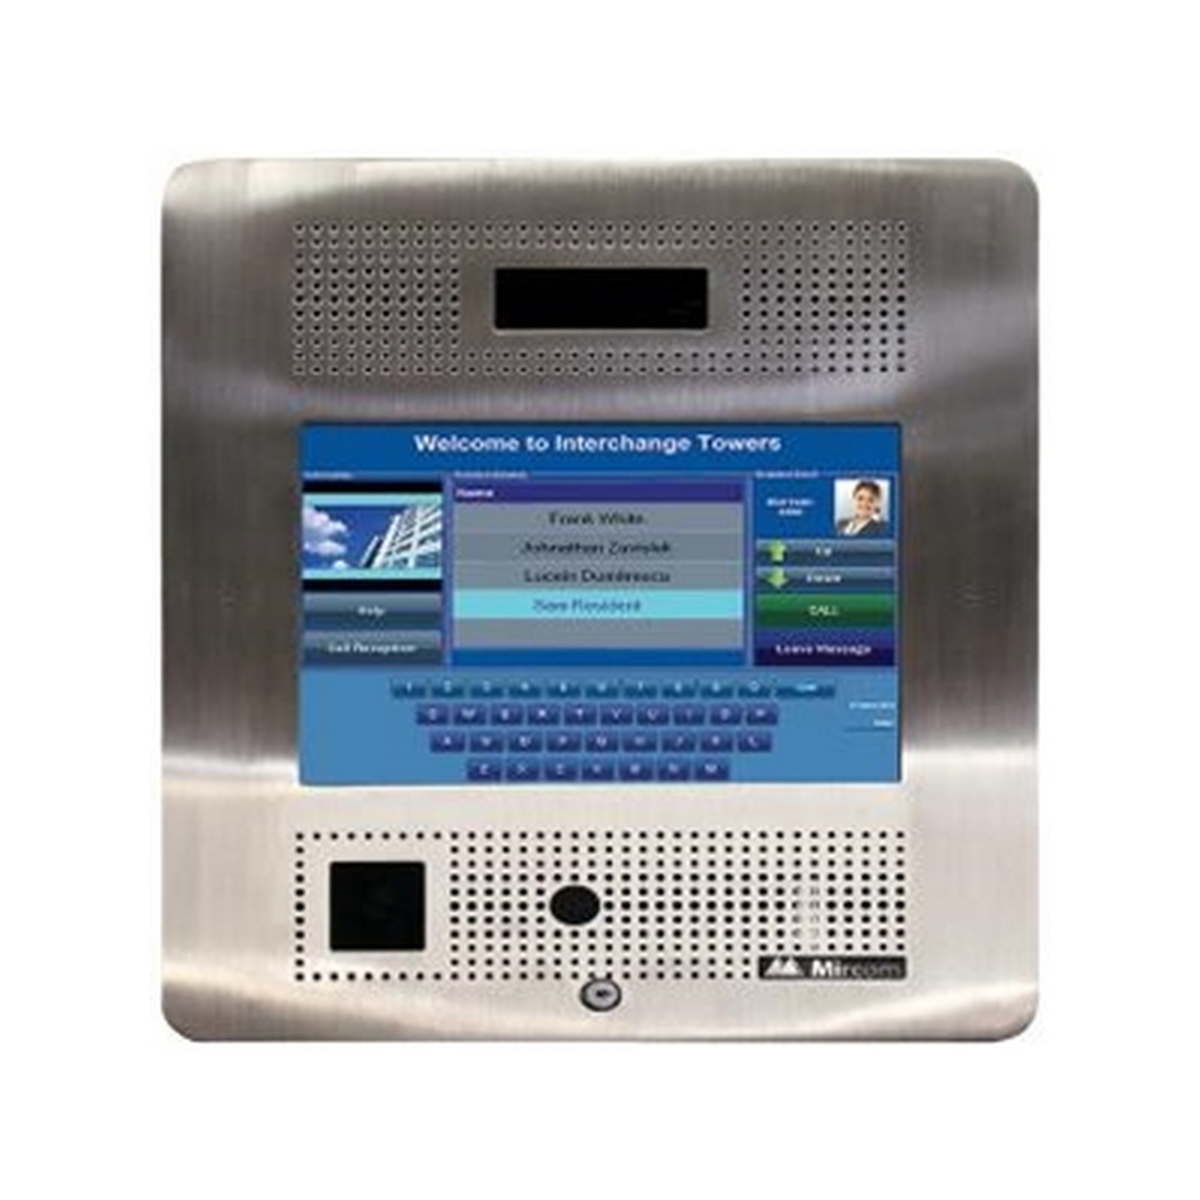 Mircom TX3 Flush Mount Touchscreen Telephone Access System - up to 2000 names, 8GB Flash Memory